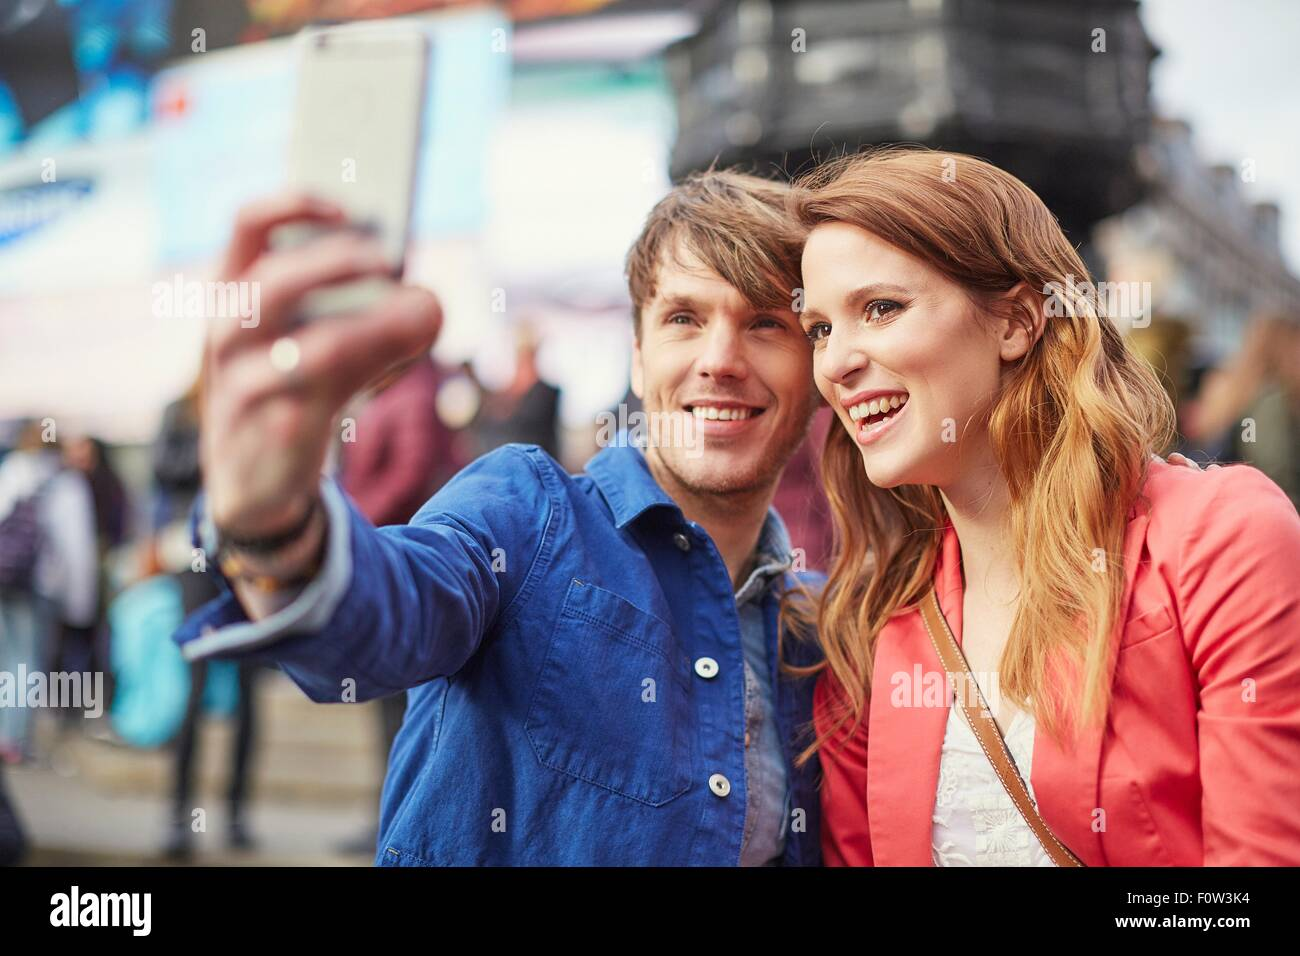 Tourist couple taking selfie on smartphone at Piccadilly Circus, London, UK Stock Photo